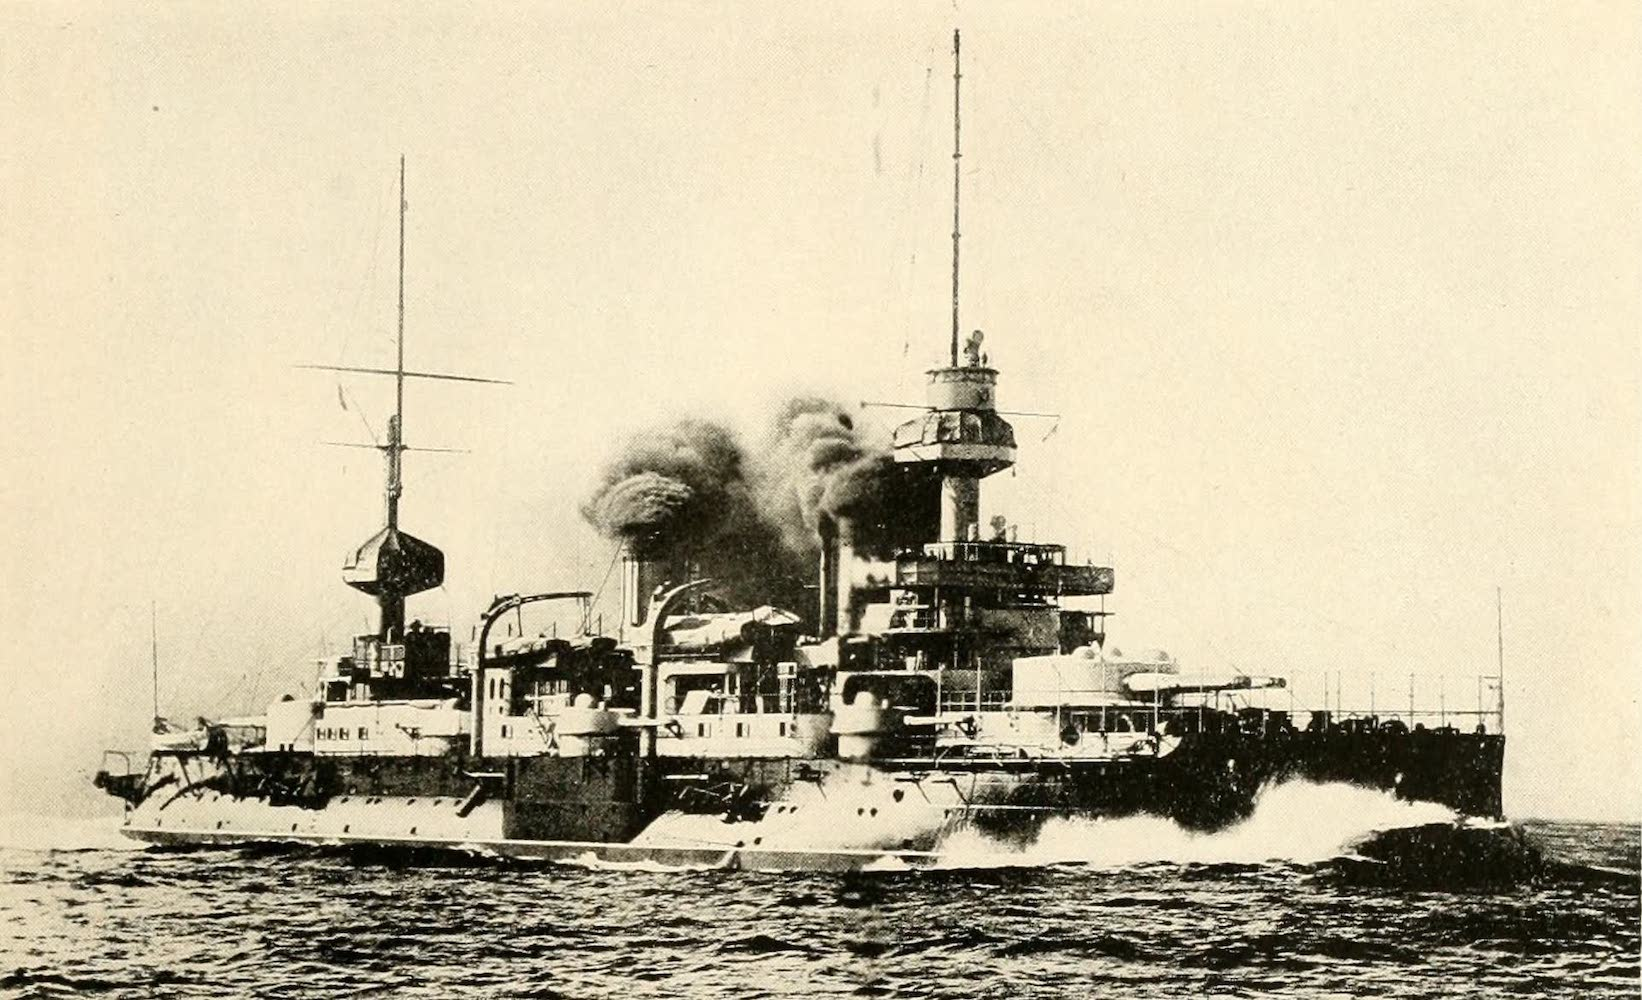 """Laird & Lee's World's War Glimpses - The French Battleship """"Suffren"""" (1914)"""